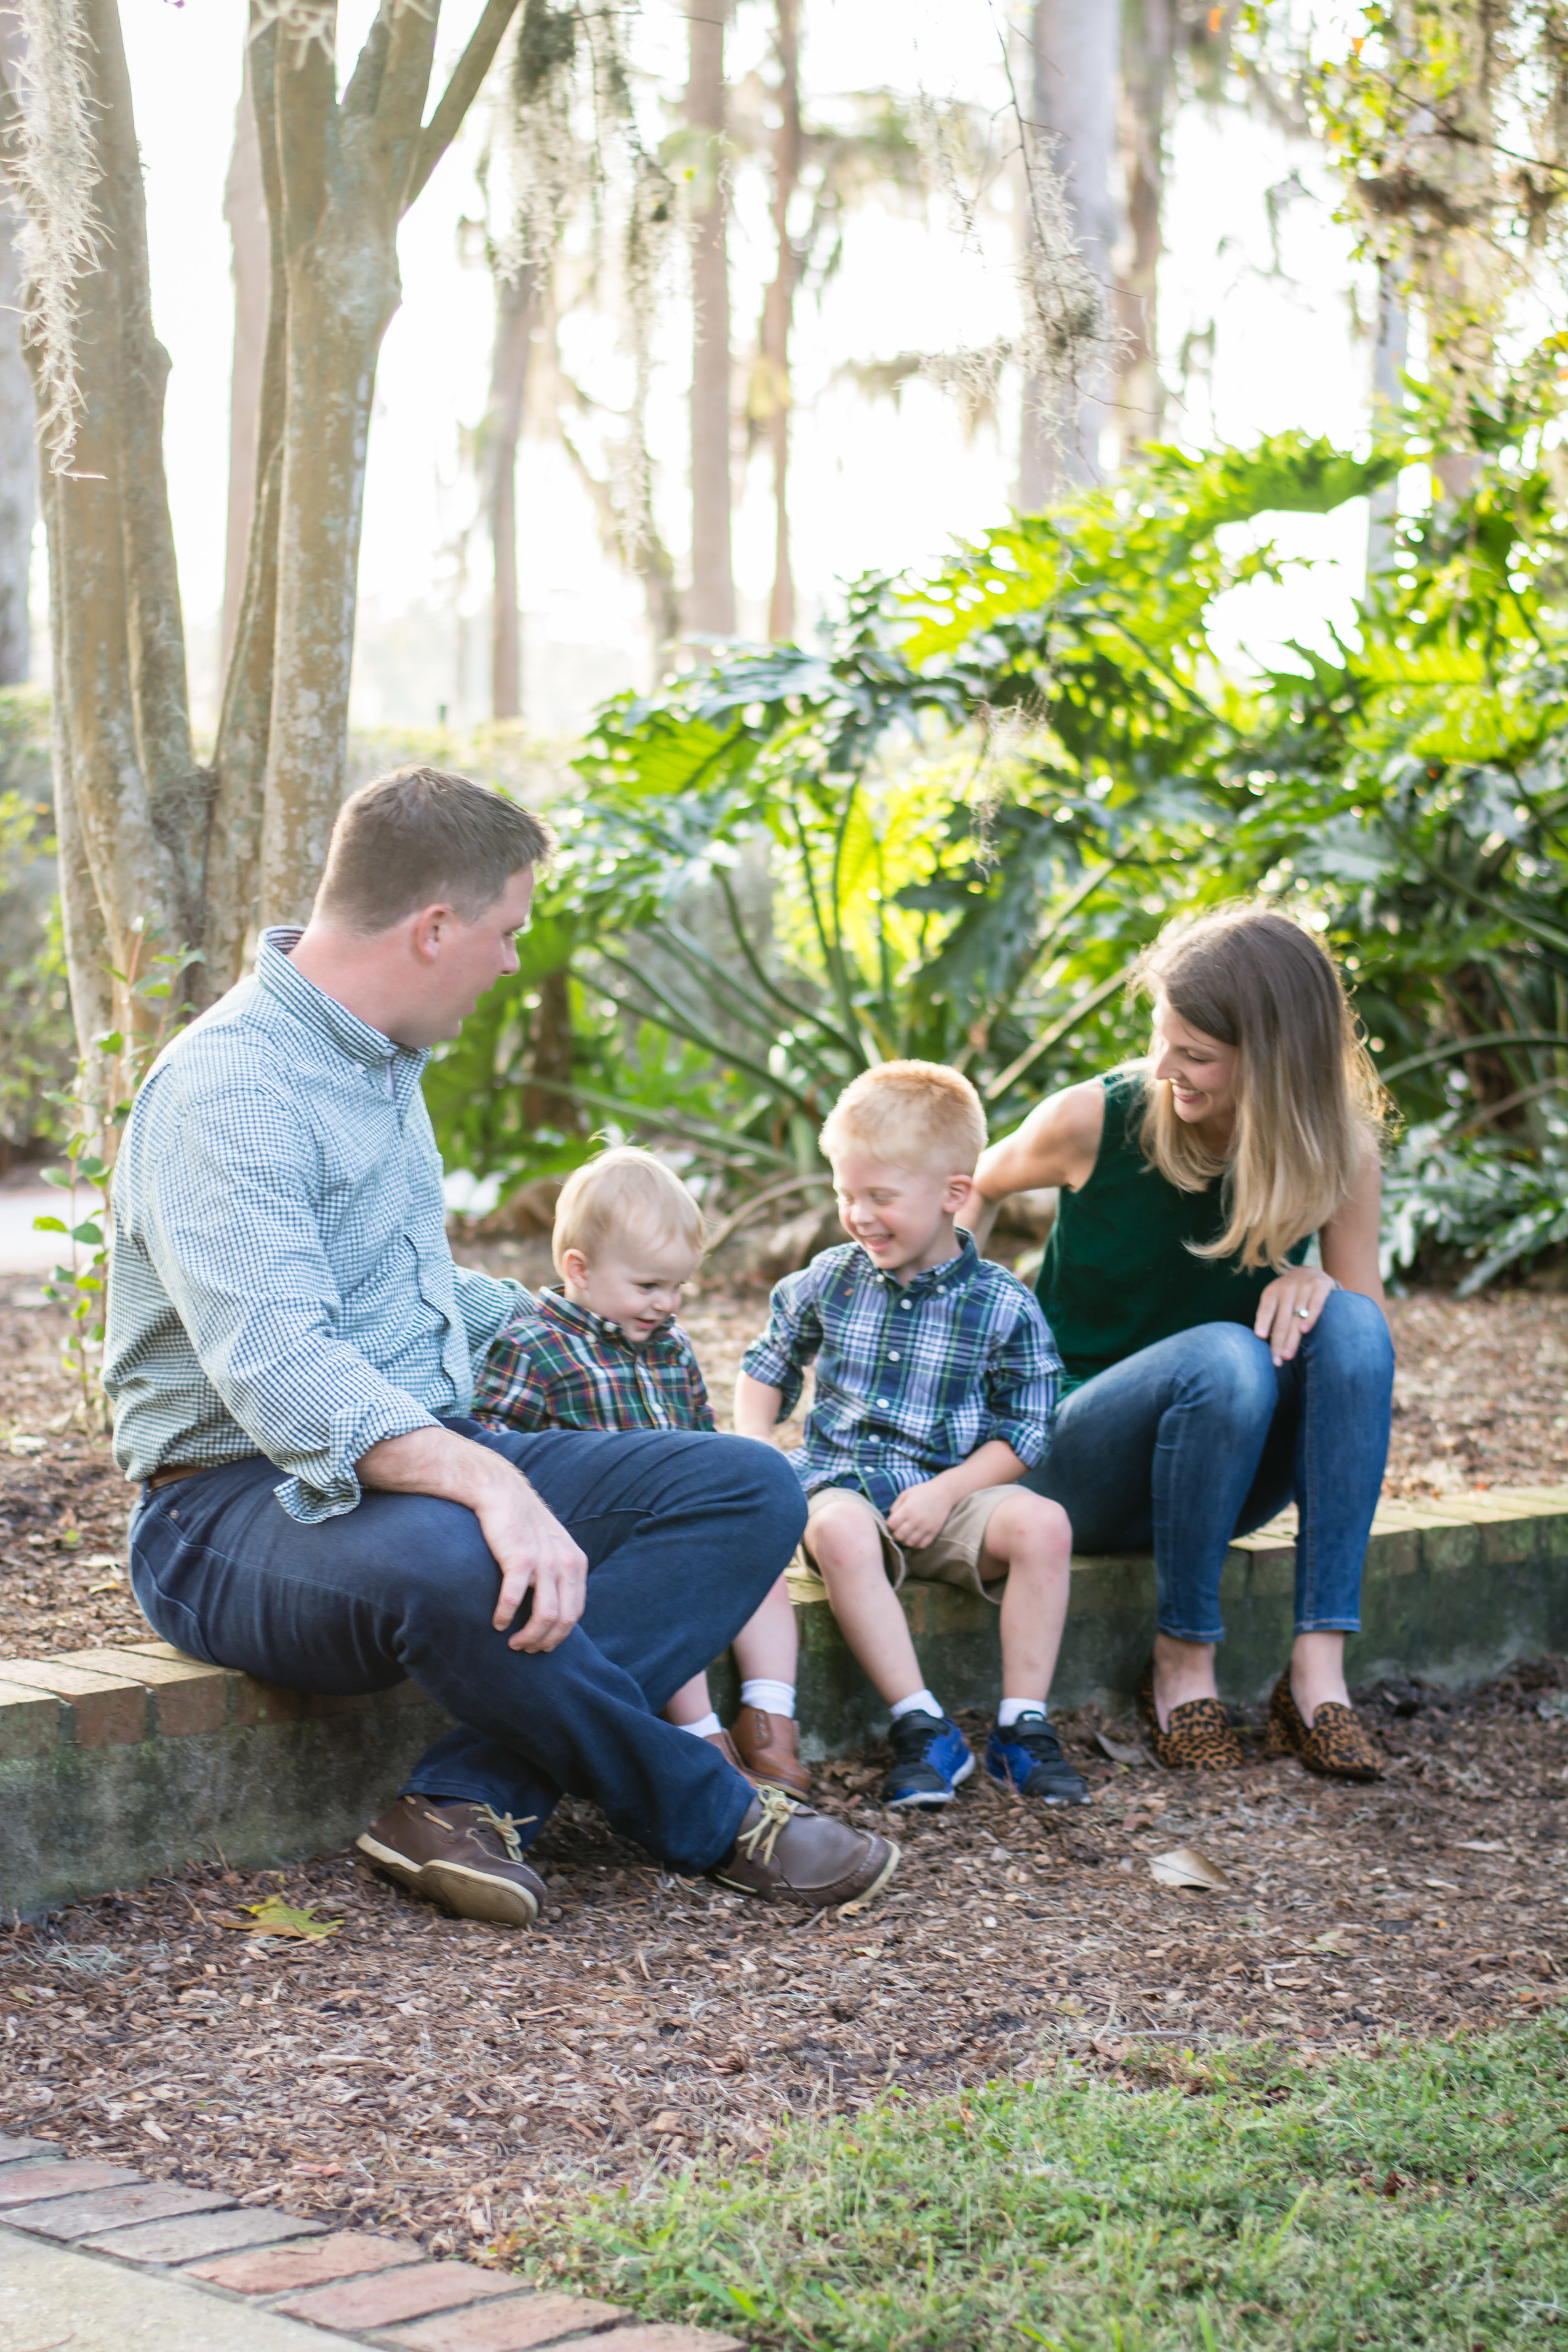 cypress-grove-park-family-session-orlando-photographer-14.jpg